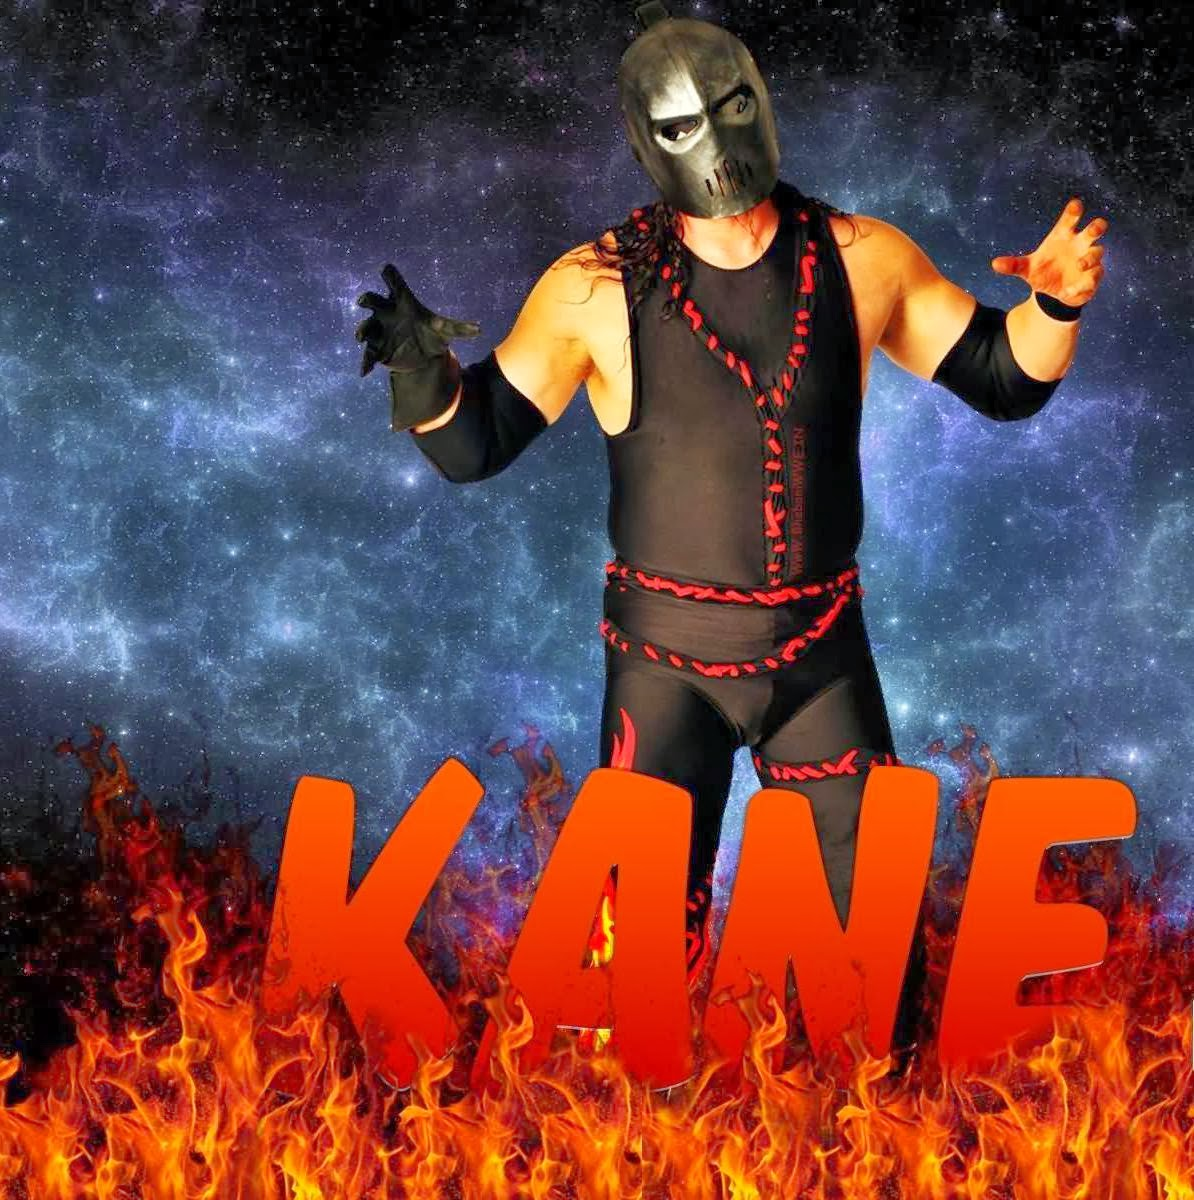 WWE HD Wallpaper Free: Kane Hd Wallpapers Free Download